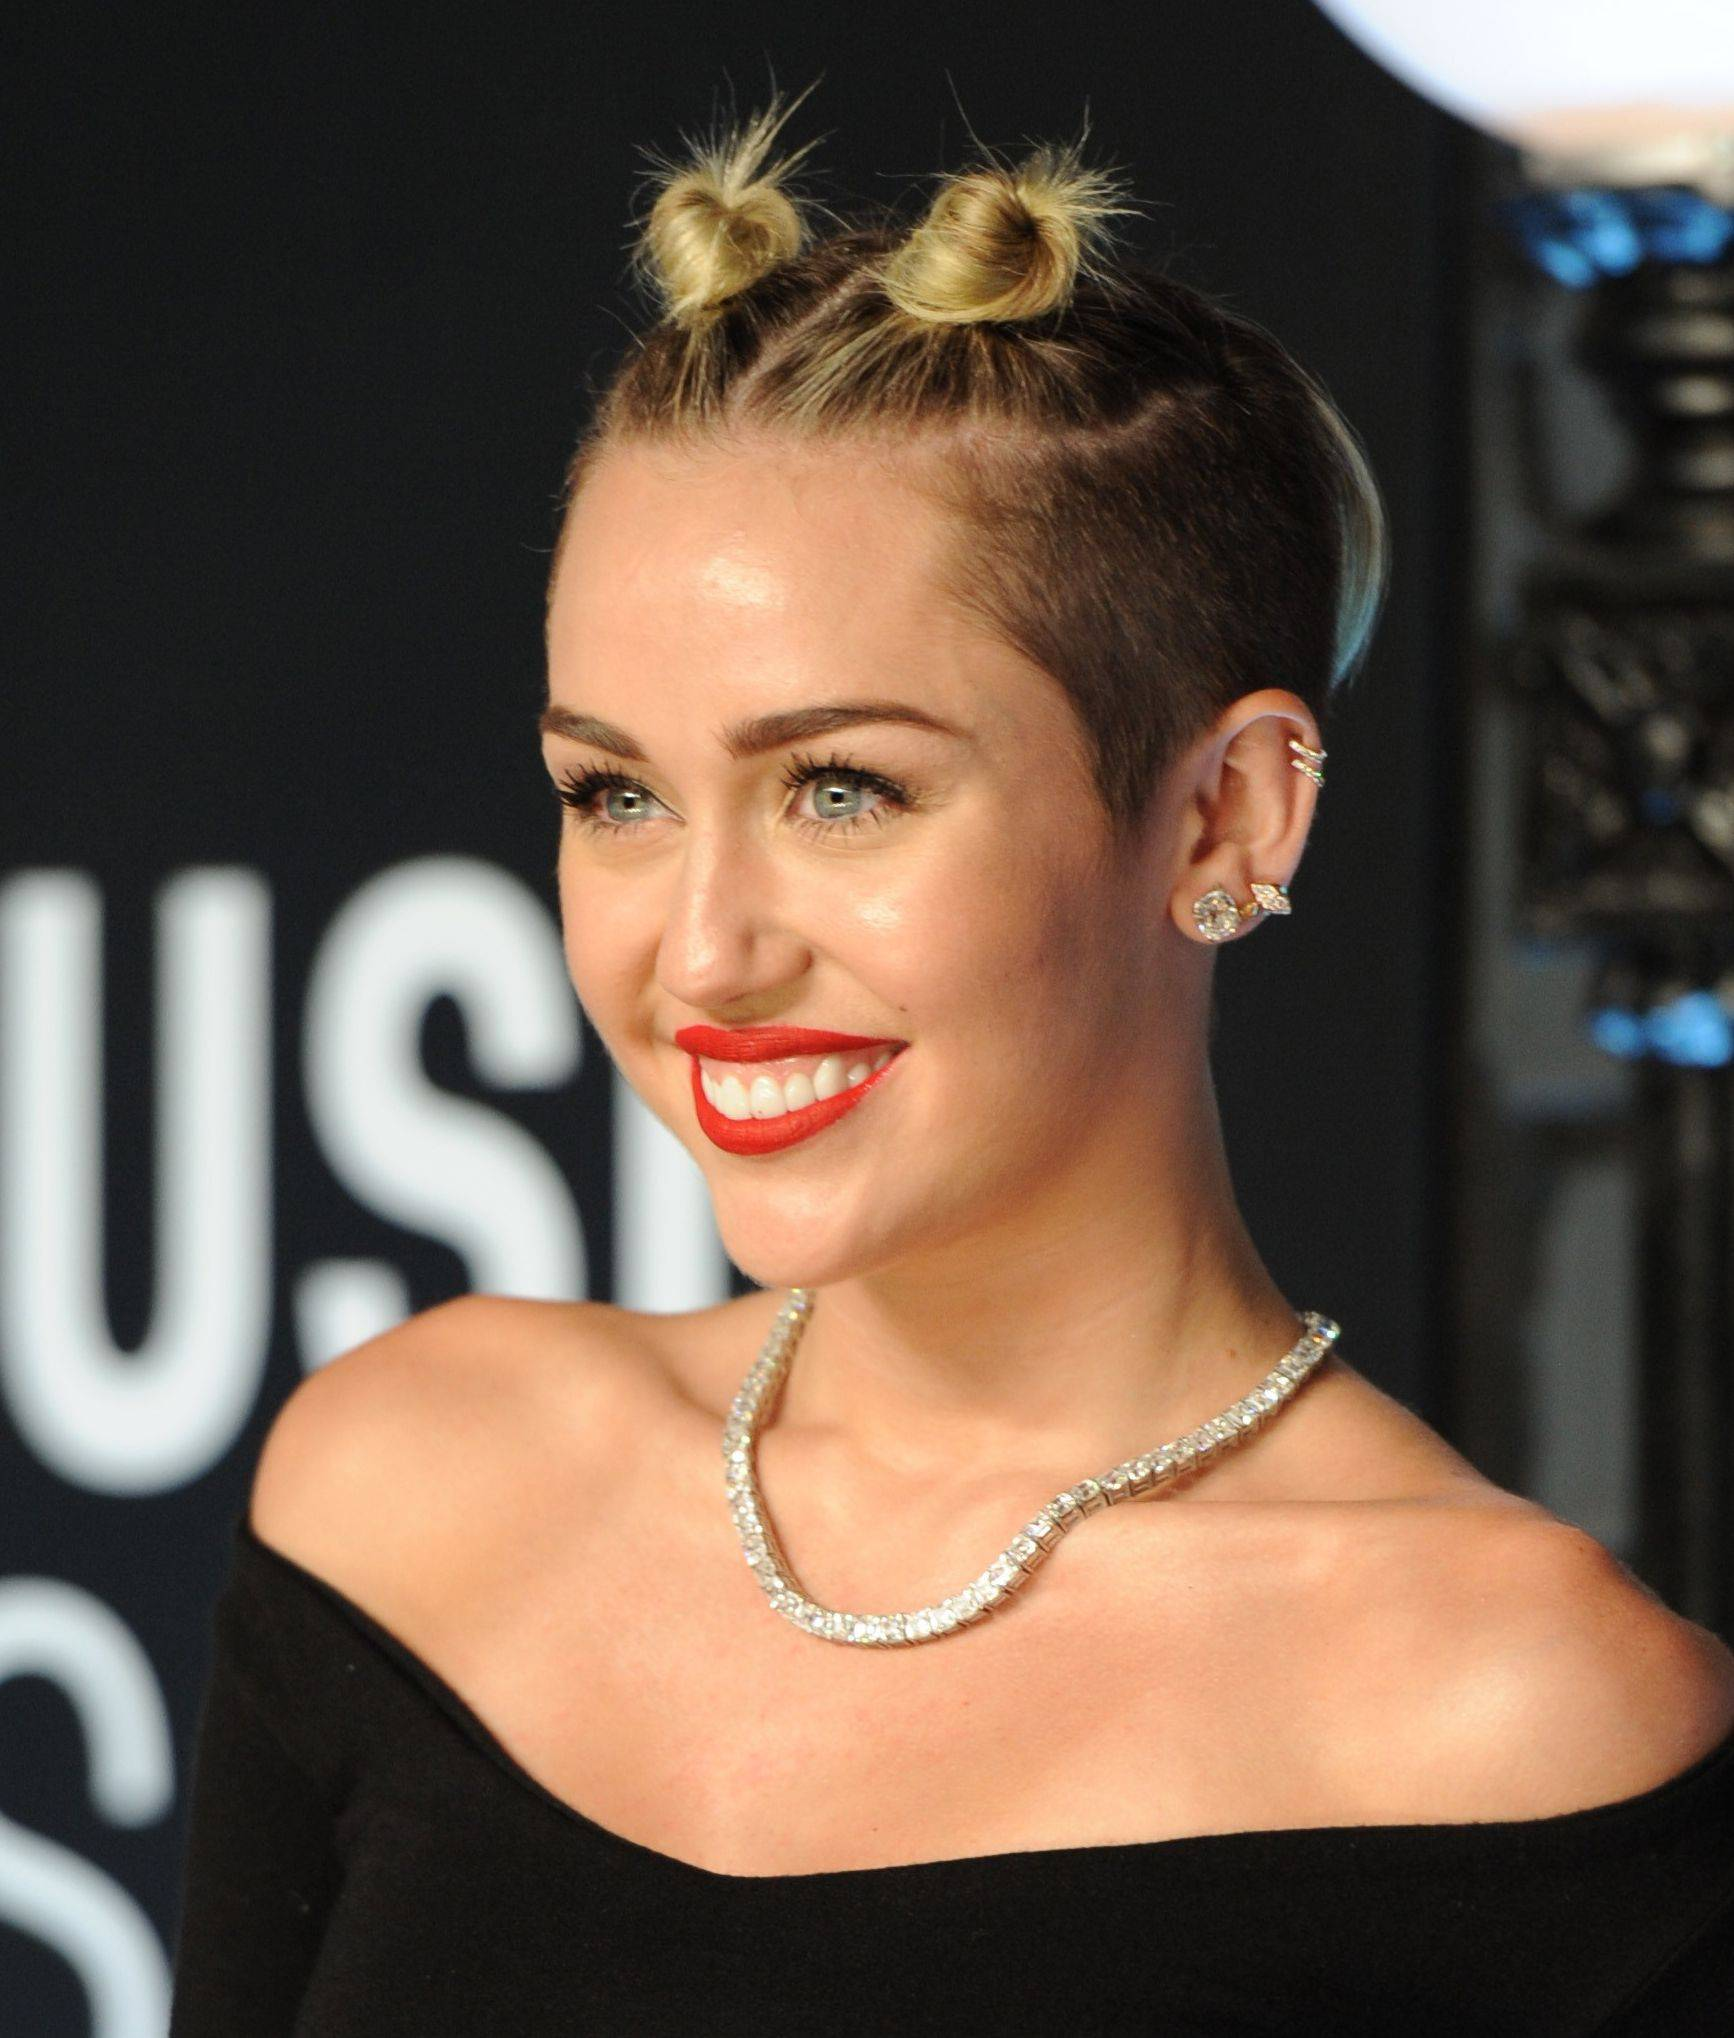 Miley Cyrus arrives at the MTV Video Music Awards on Sunday -- before she did her best to promote the Oxford dictionary's newest word.